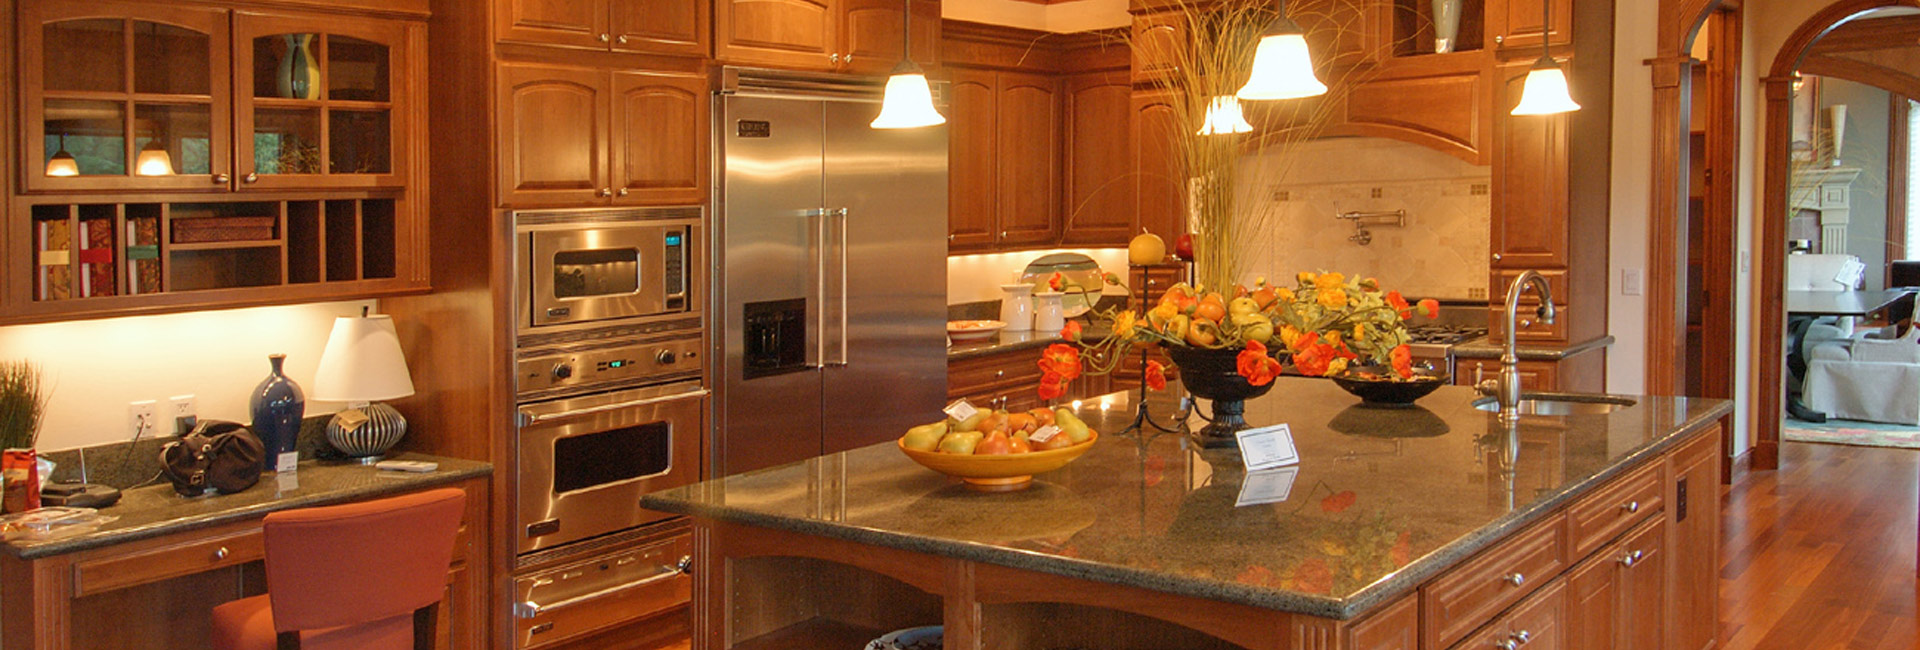 kitchen-remodeling-inland-empire-chino-hills